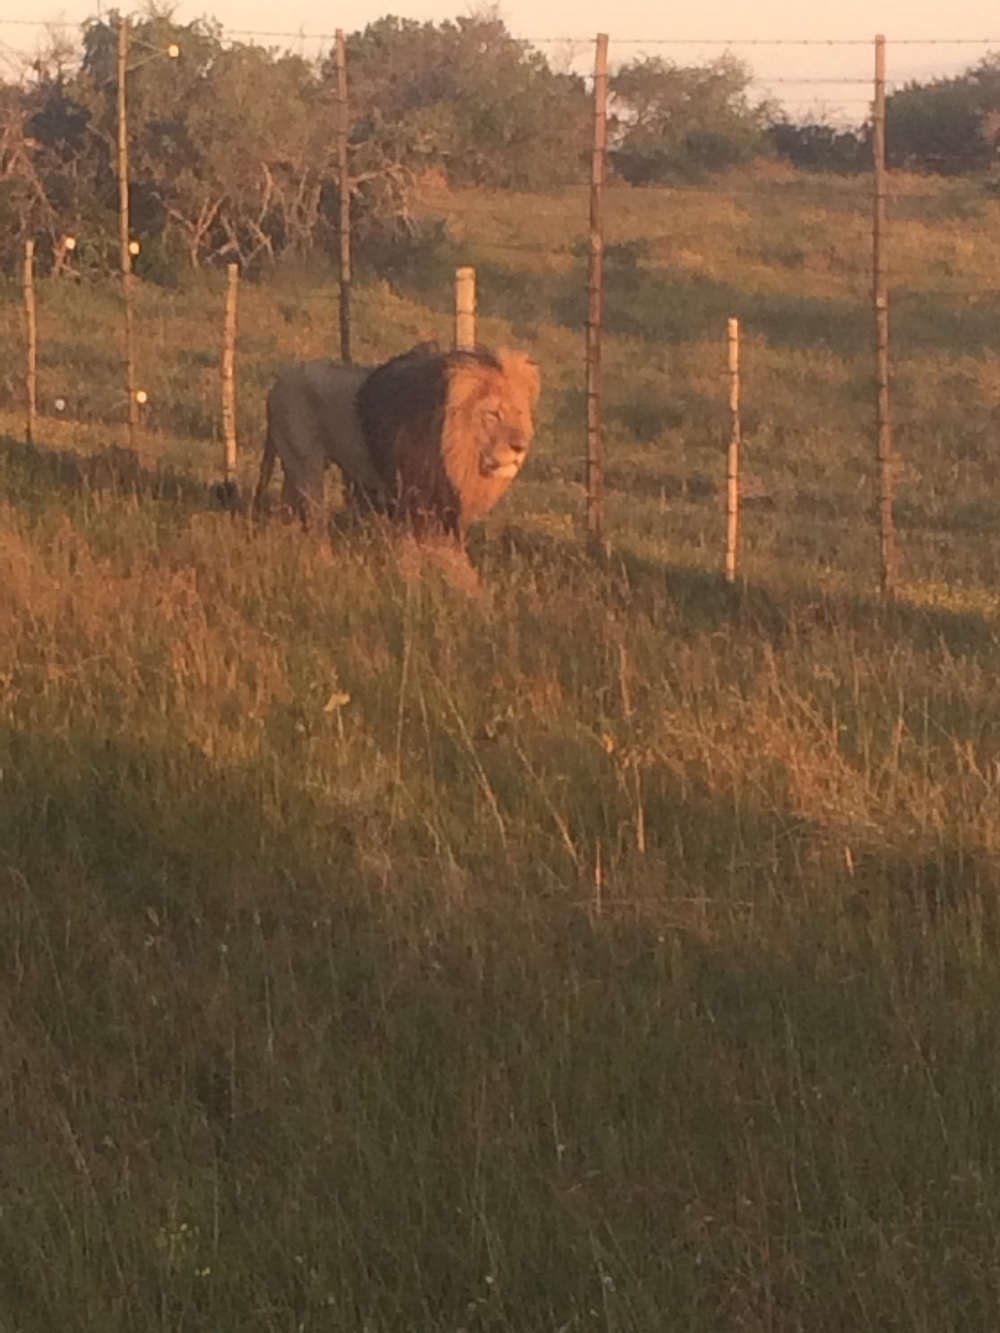 The Lions were following the fence at Schotia Safaris. Sometimes the lions from Addo come to visit on the other side of the fence